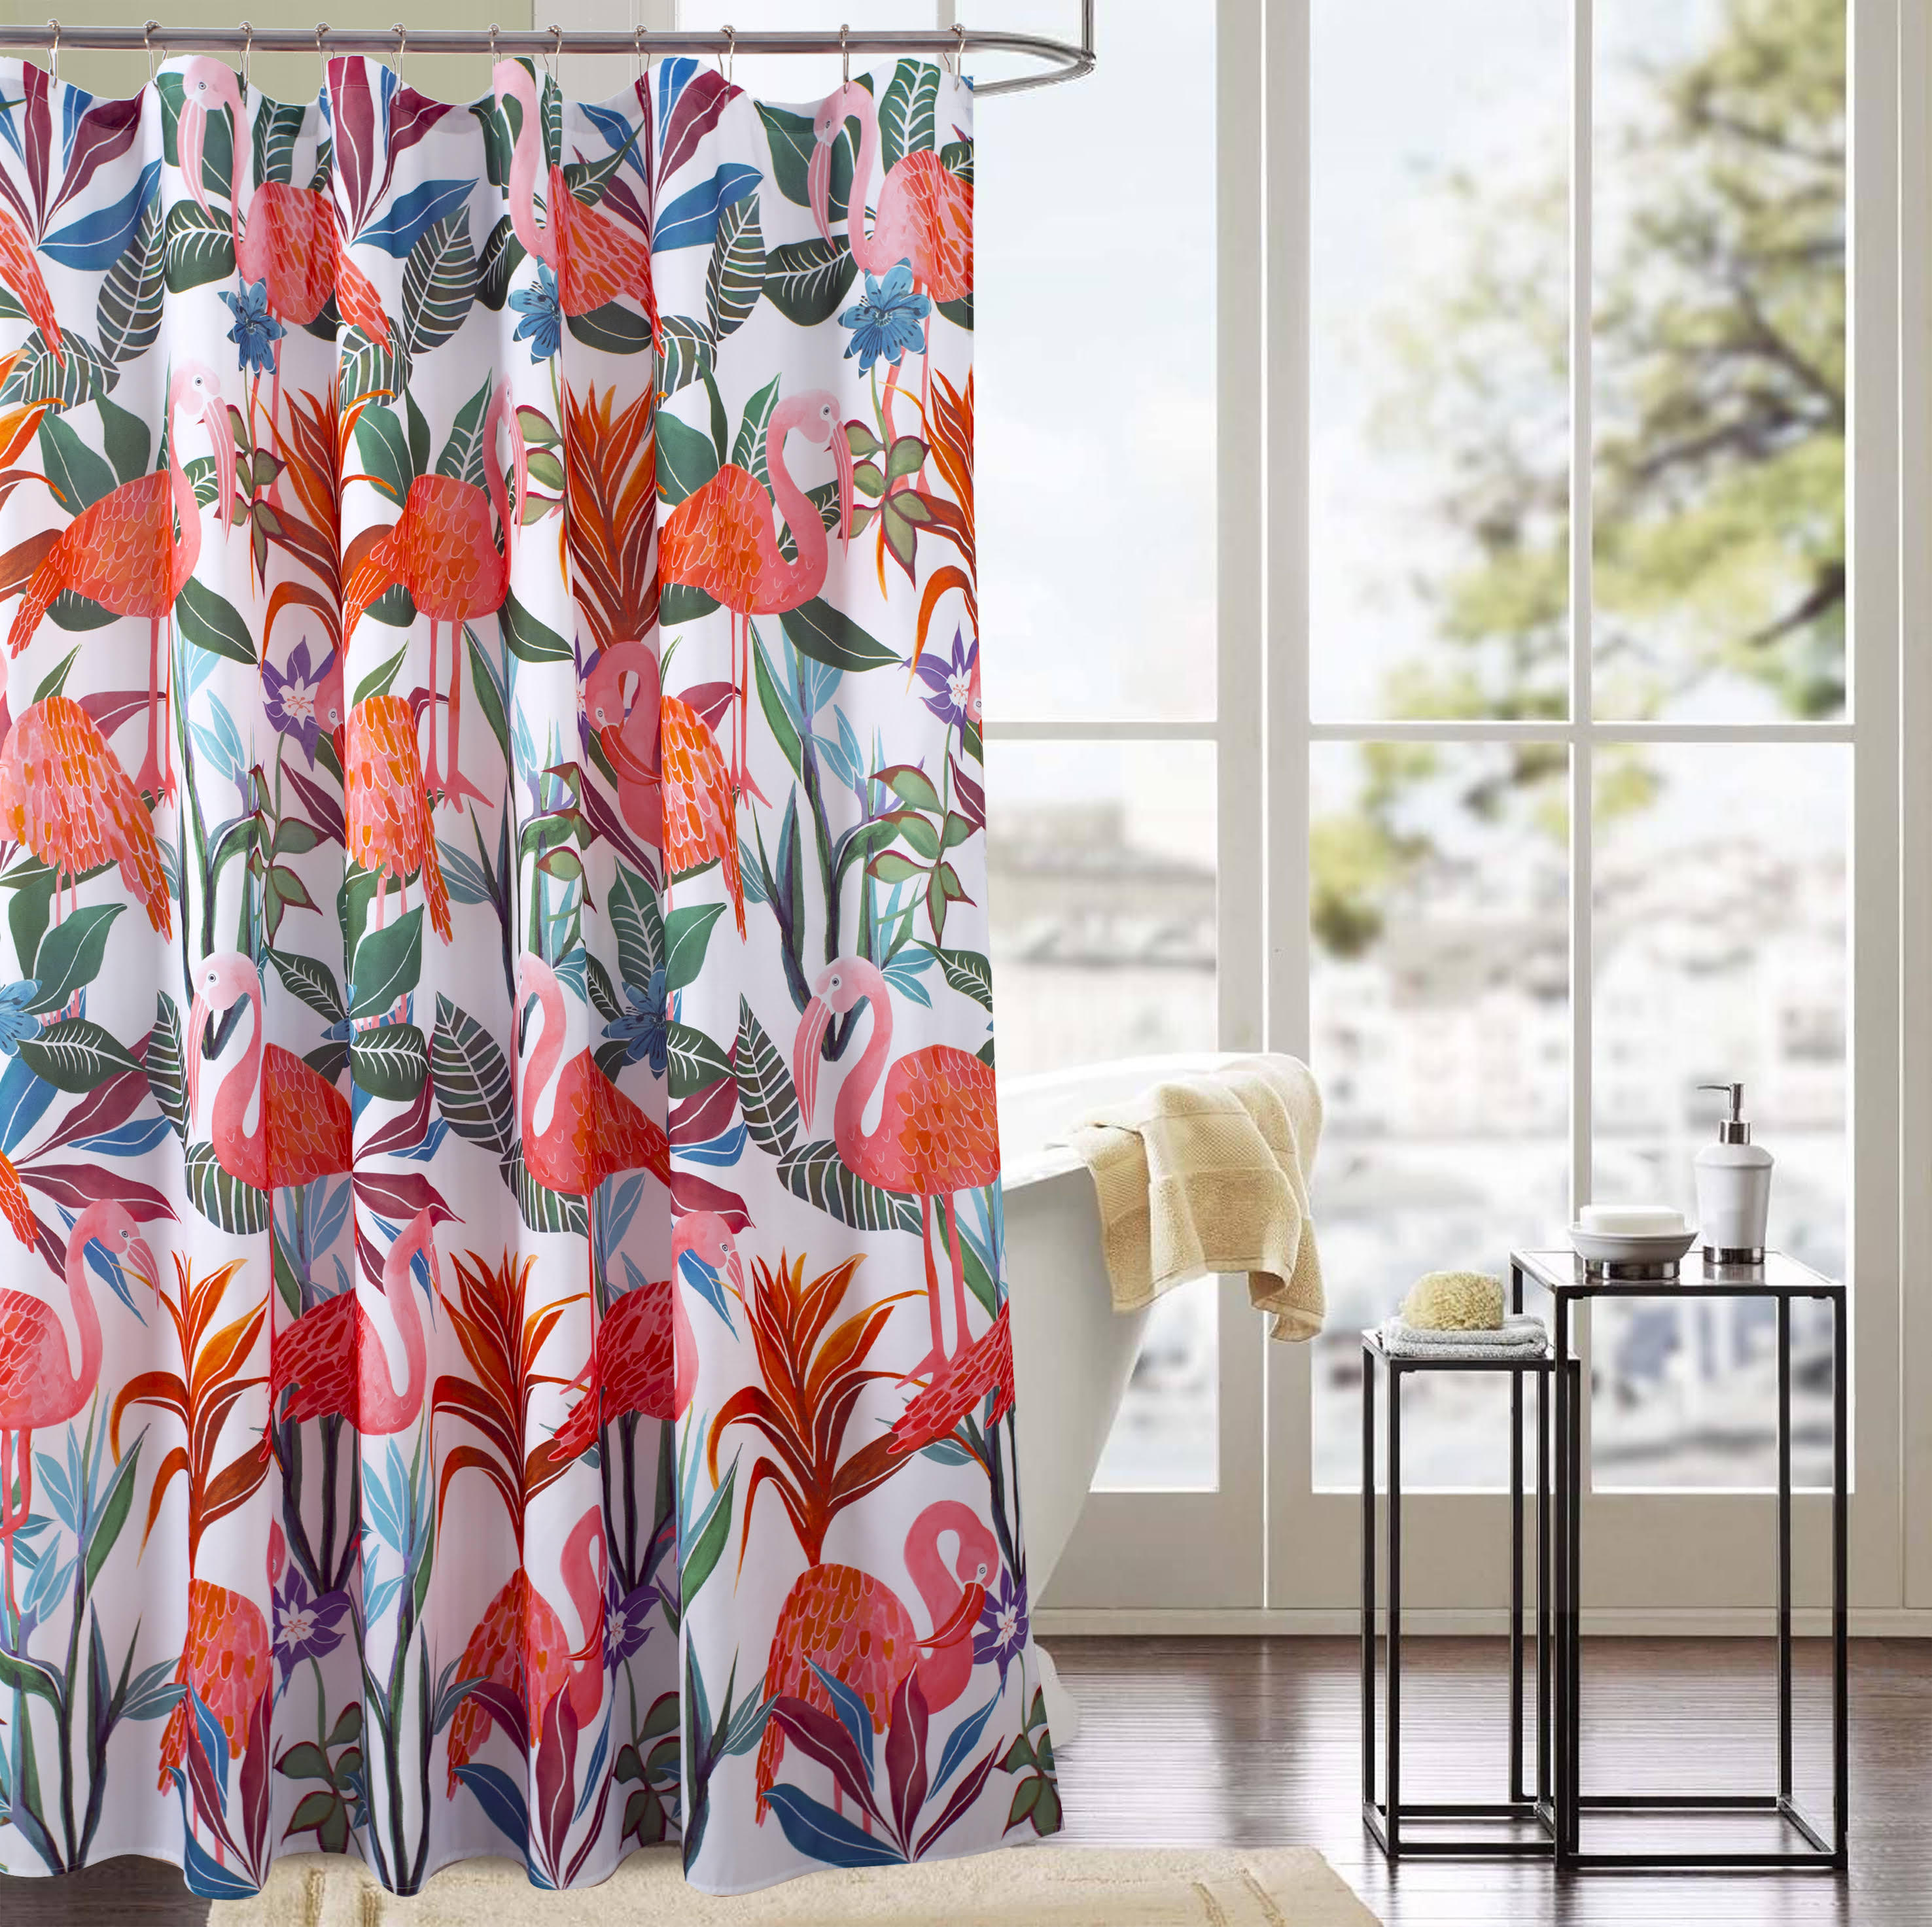 RT Designers Collection Classic Flamingo 70 x 72 in. Printed Shower Curtain, Flamingo